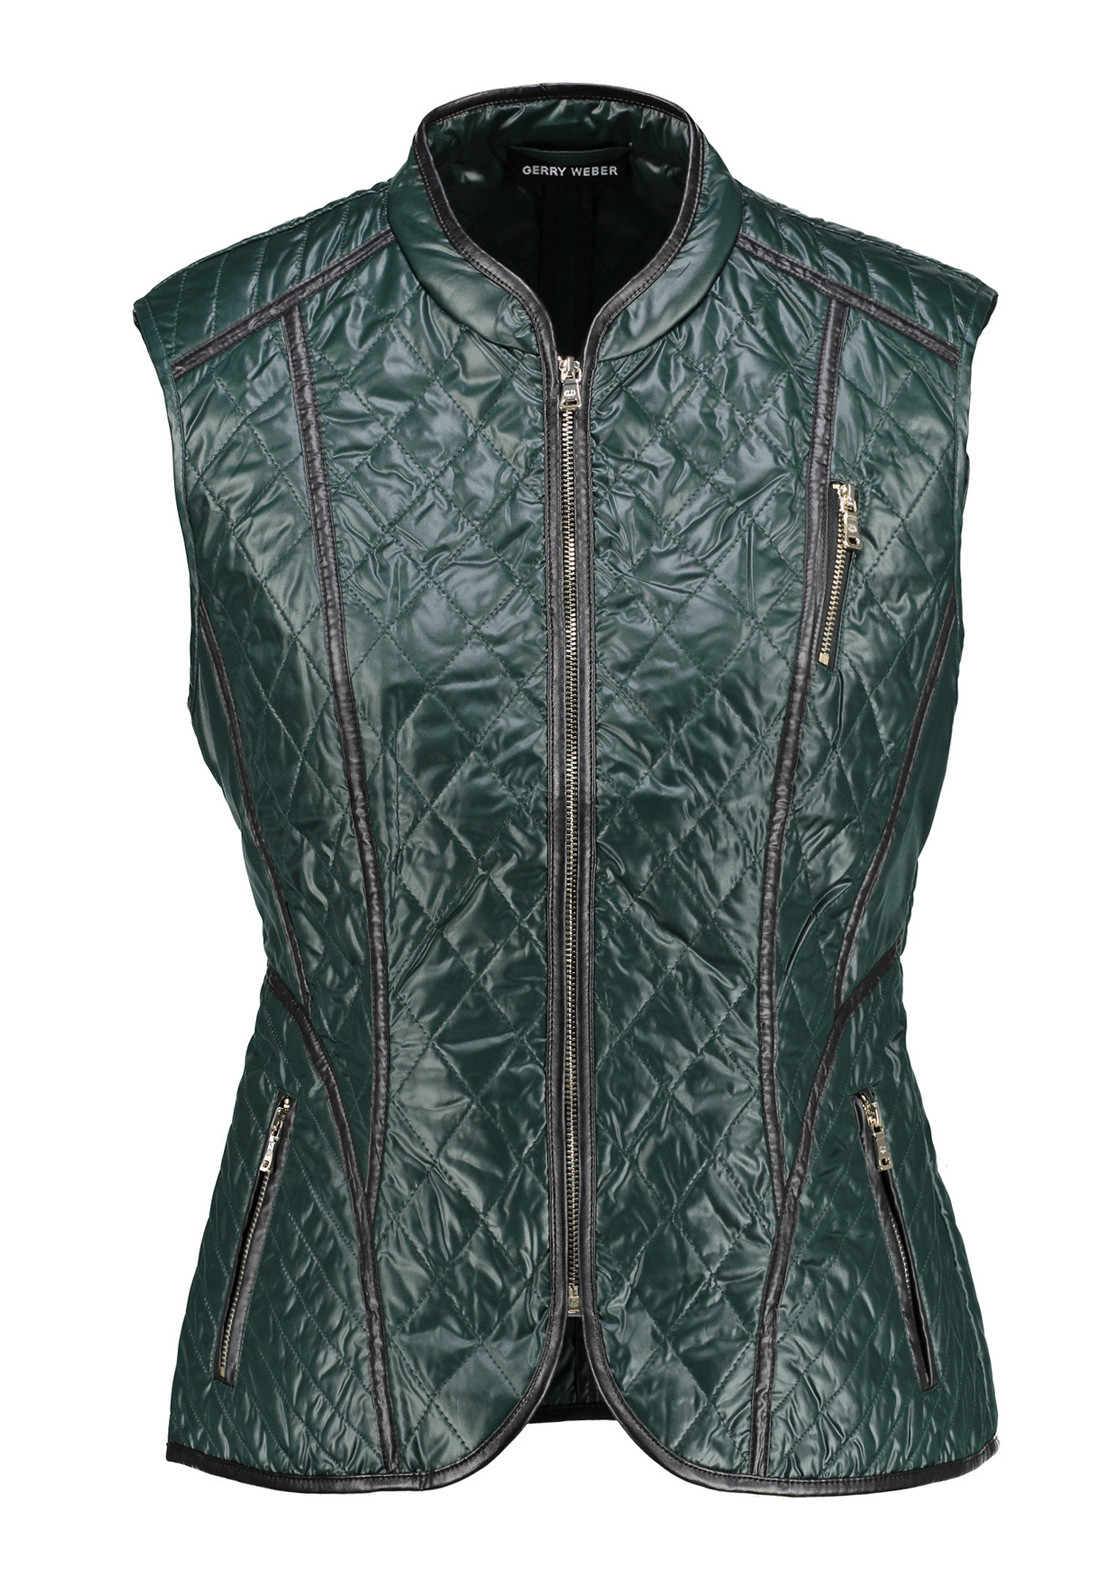 Gerry Weber Quilted Shimmer Gilet, Forest Green